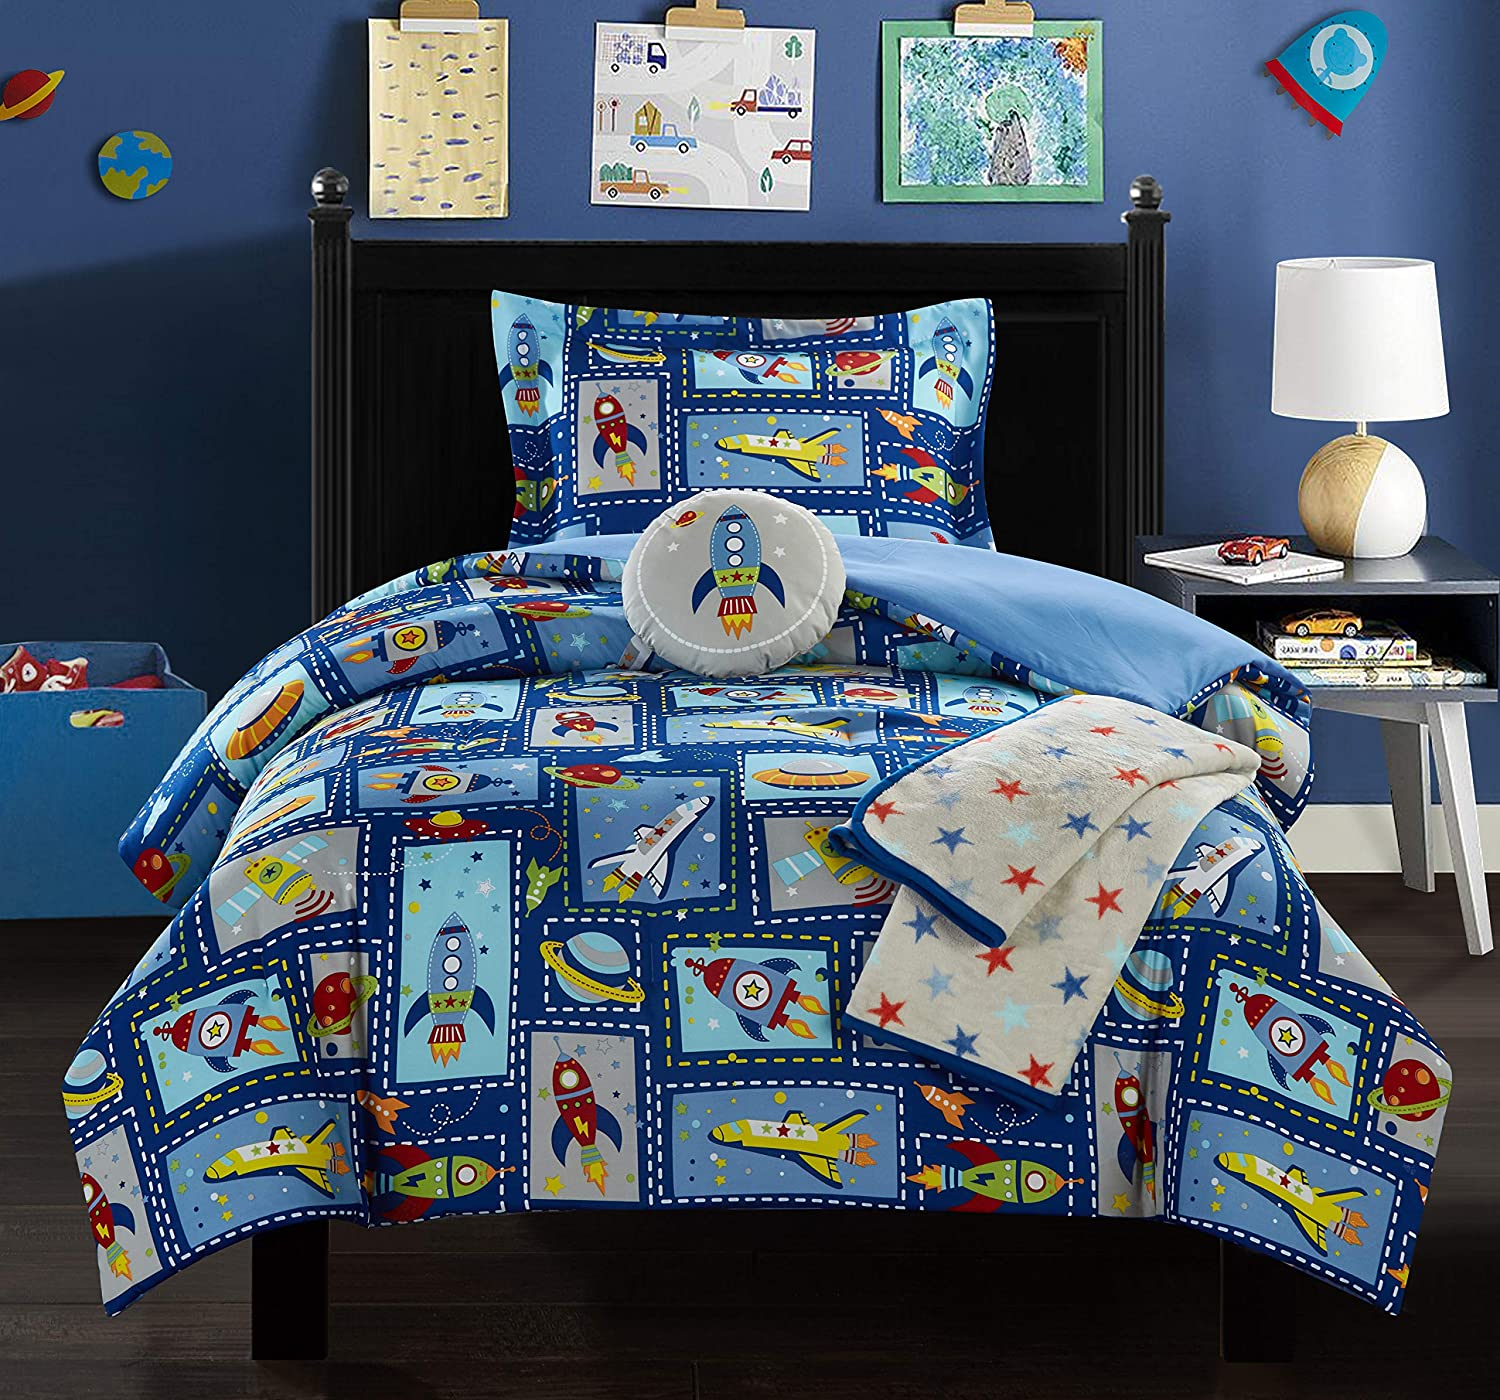 Chic Home Spaceship 5 Piece Comforter Set Space Explorer Extraterrestrial Theme Youth Design Bedding-Throw Blanket Decorative Pillow Shams Included, Full